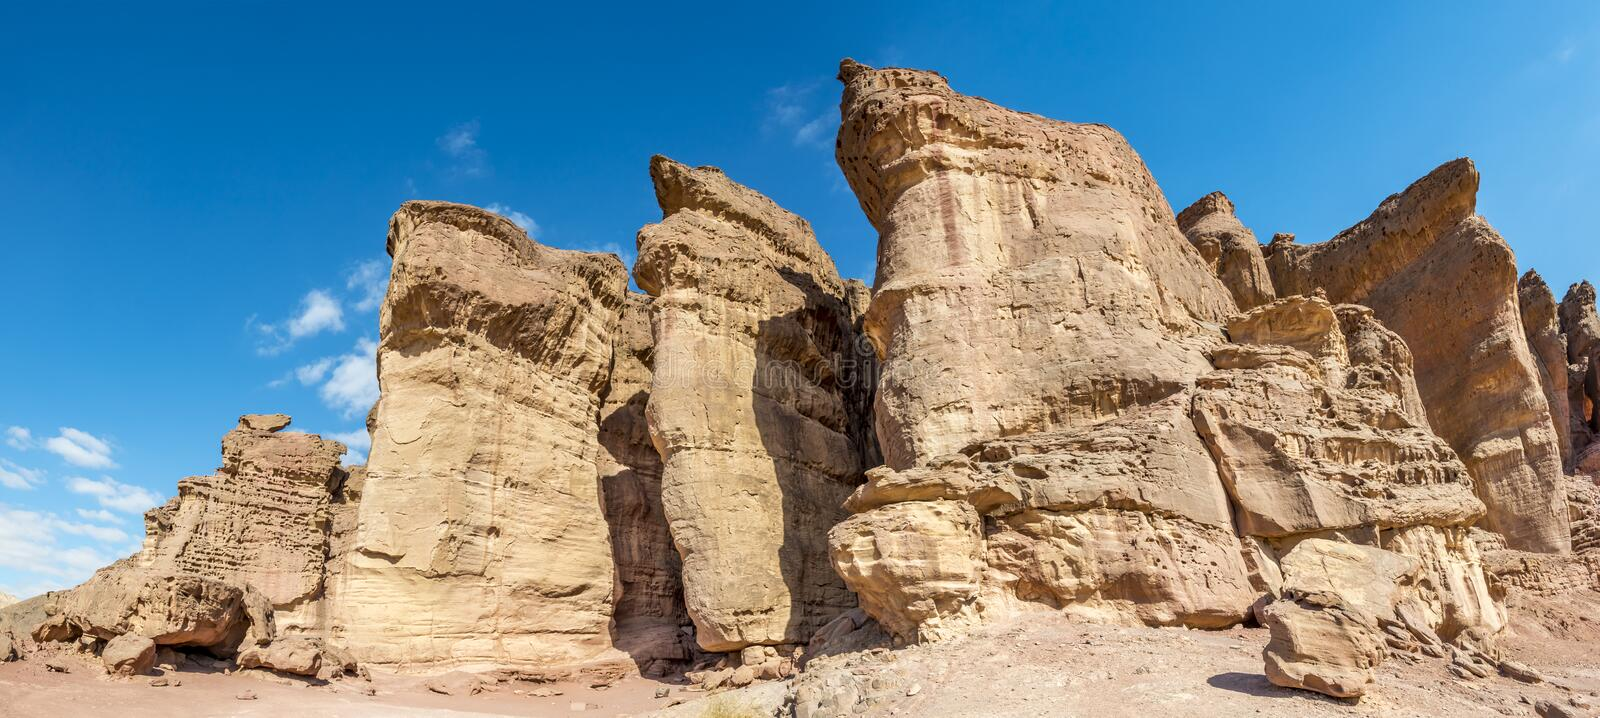 Panoramic view on unique stone formation - pillars of the Solomon King in Timna geological park royalty free stock photography